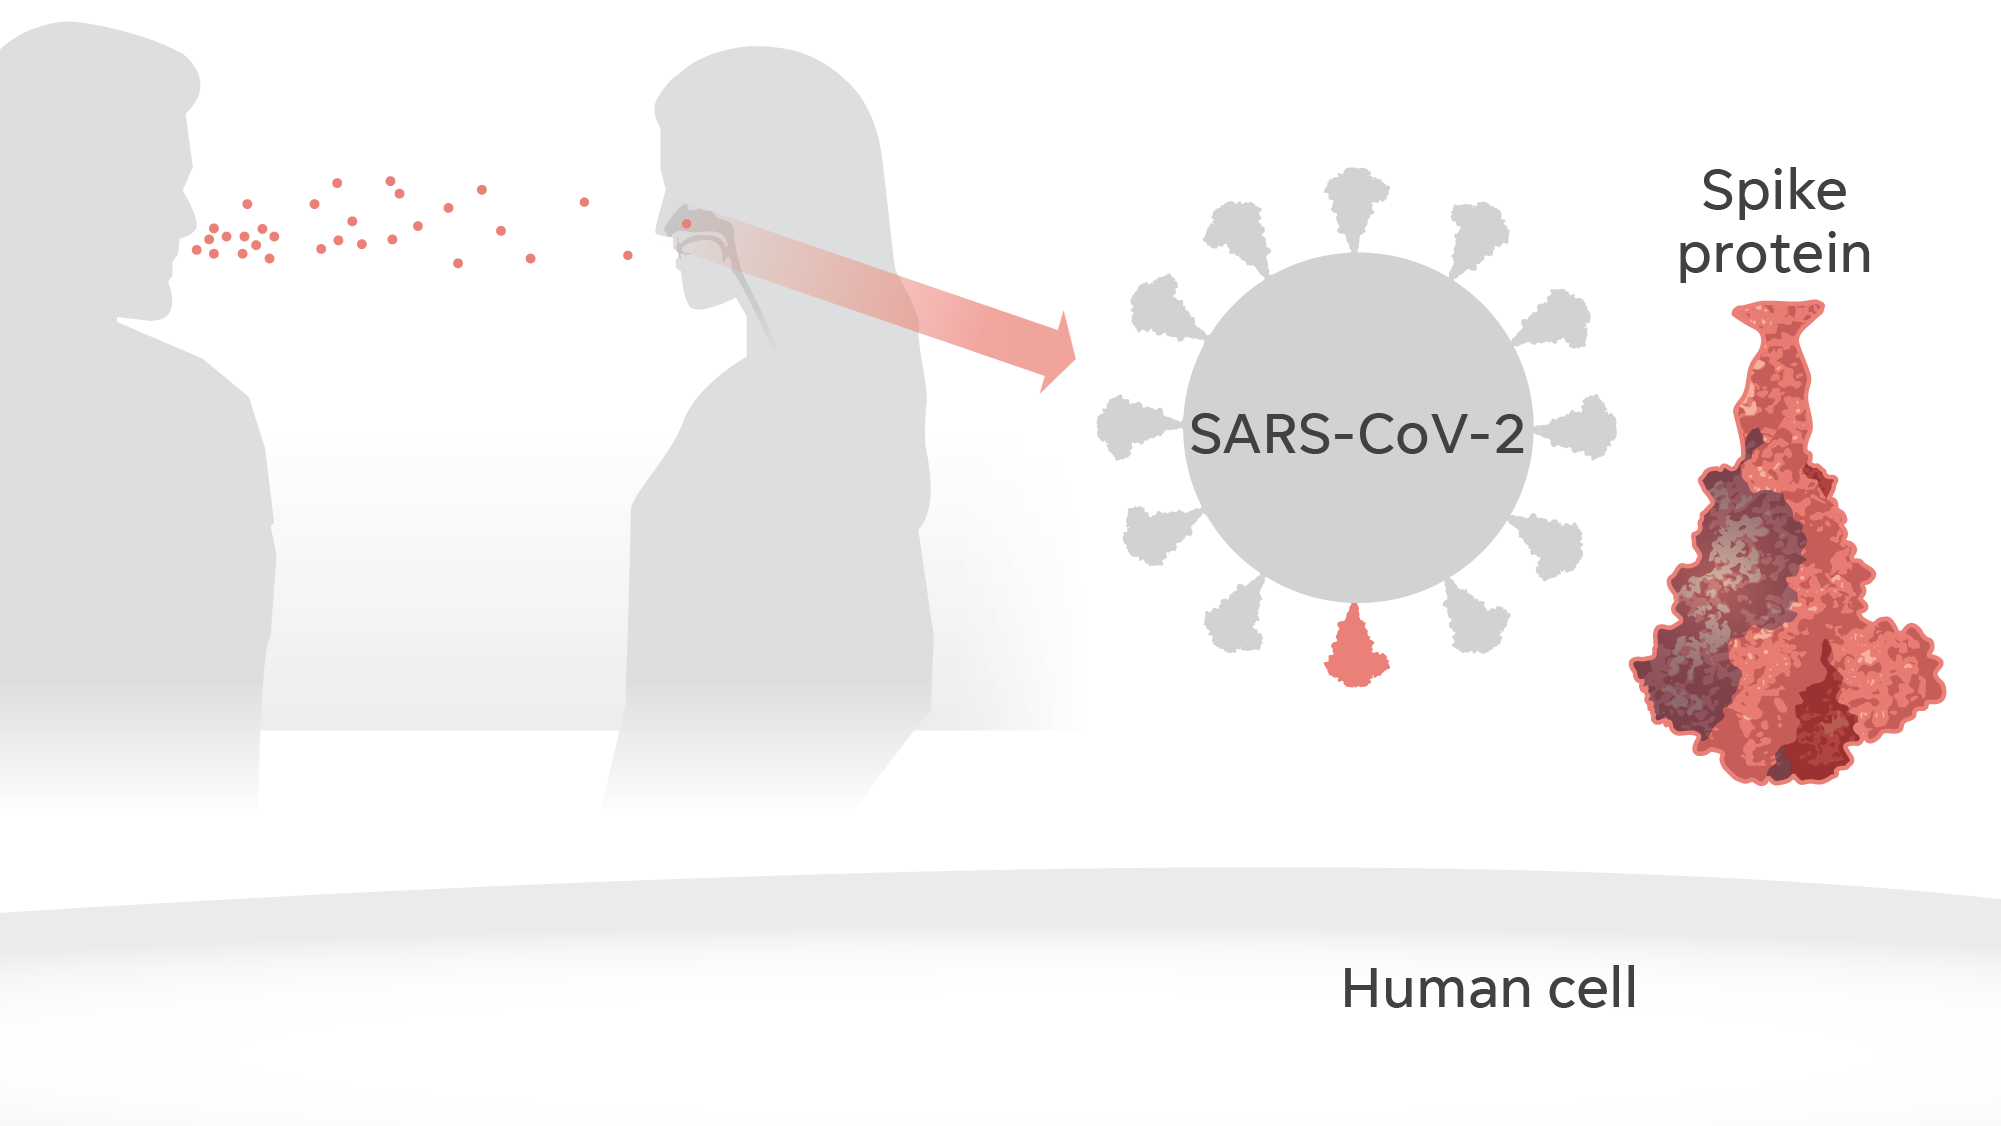 """Scientists learned that people are infected by SARS-CoV-2 through airborne droplets from a person carrying the virus. On the surface of the virus, spike proteins give it a """"corona"""" or crown shape – a coronavirus."""